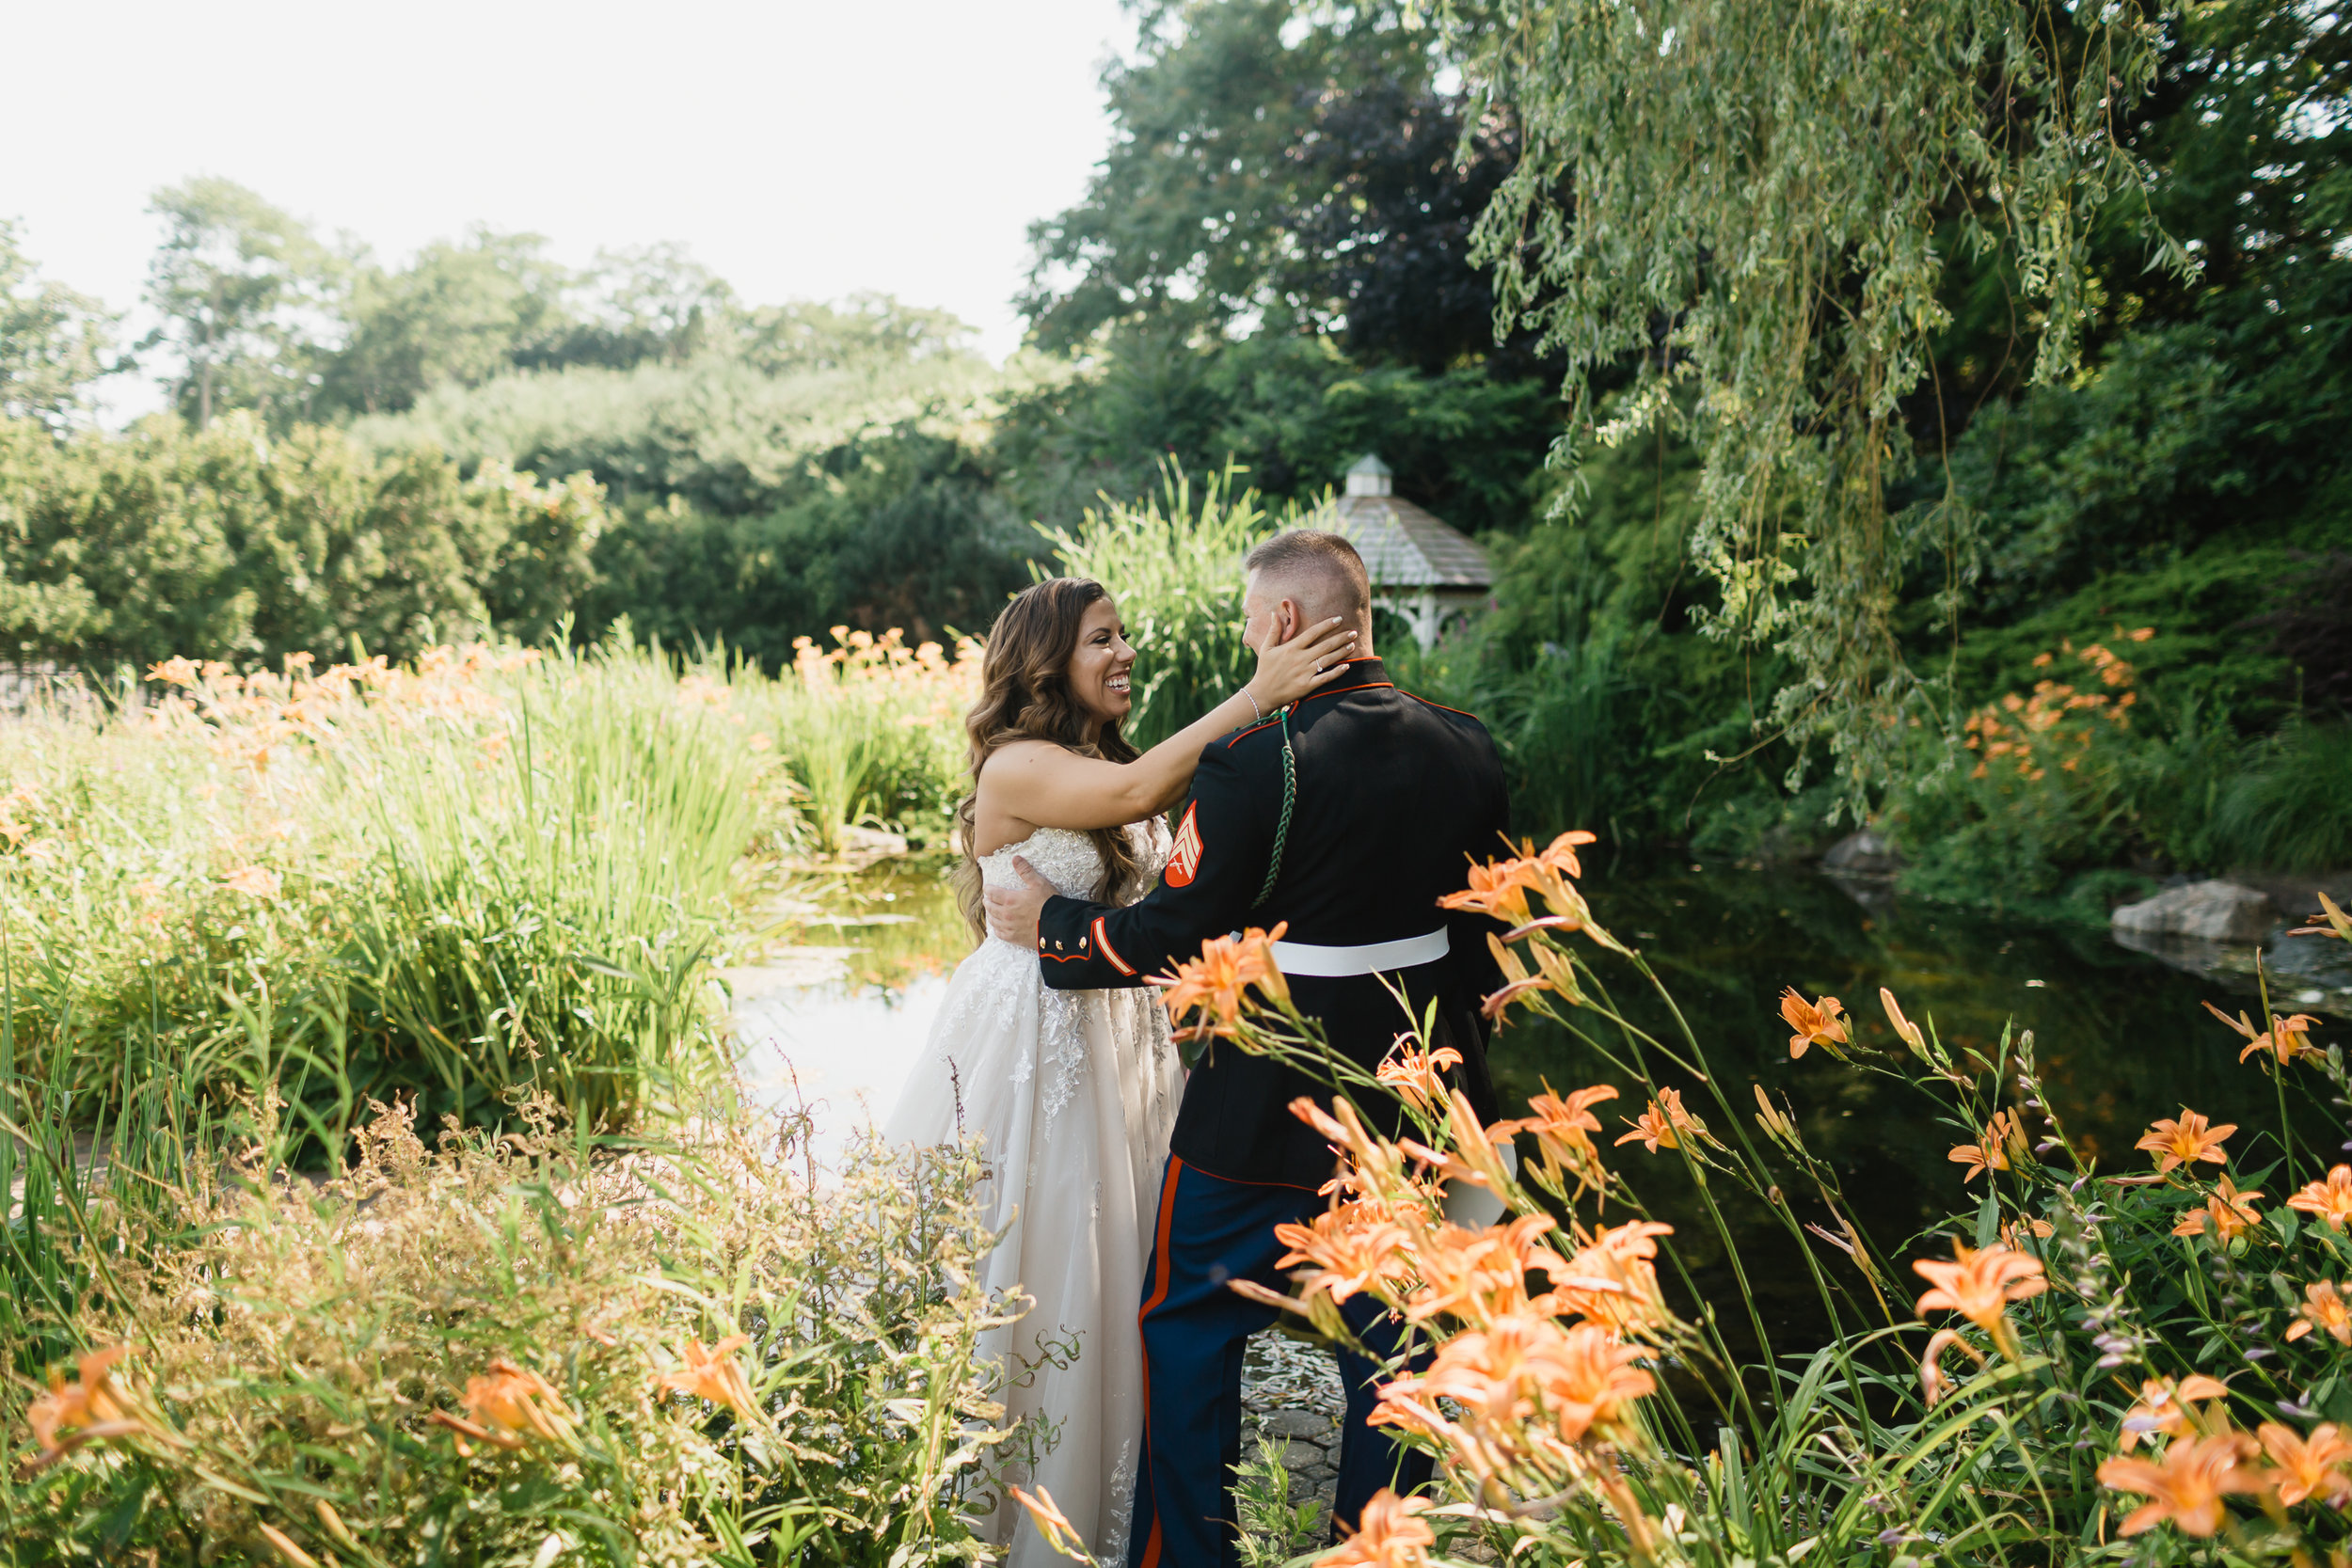 Gianna Keiko Atlanta NYC California Wedding Photographer_Sneak Peek-35.jpg